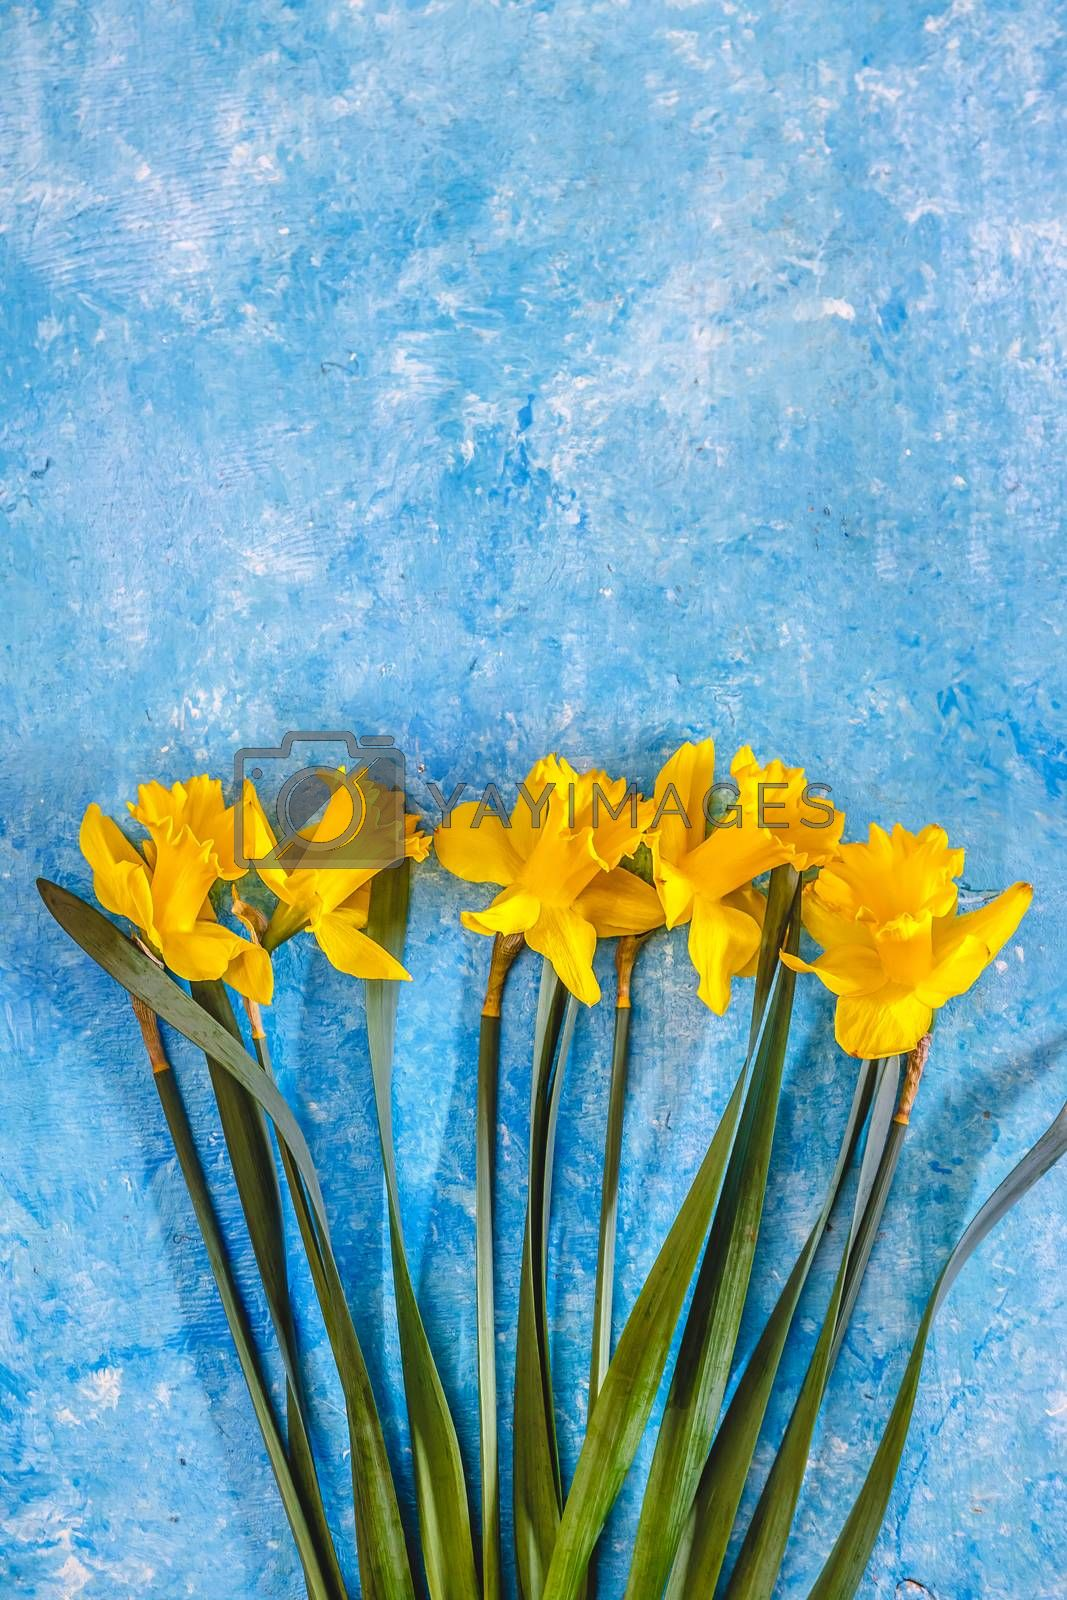 Daffodil flowers yellow on a blue marble background, there is an by Tanacha